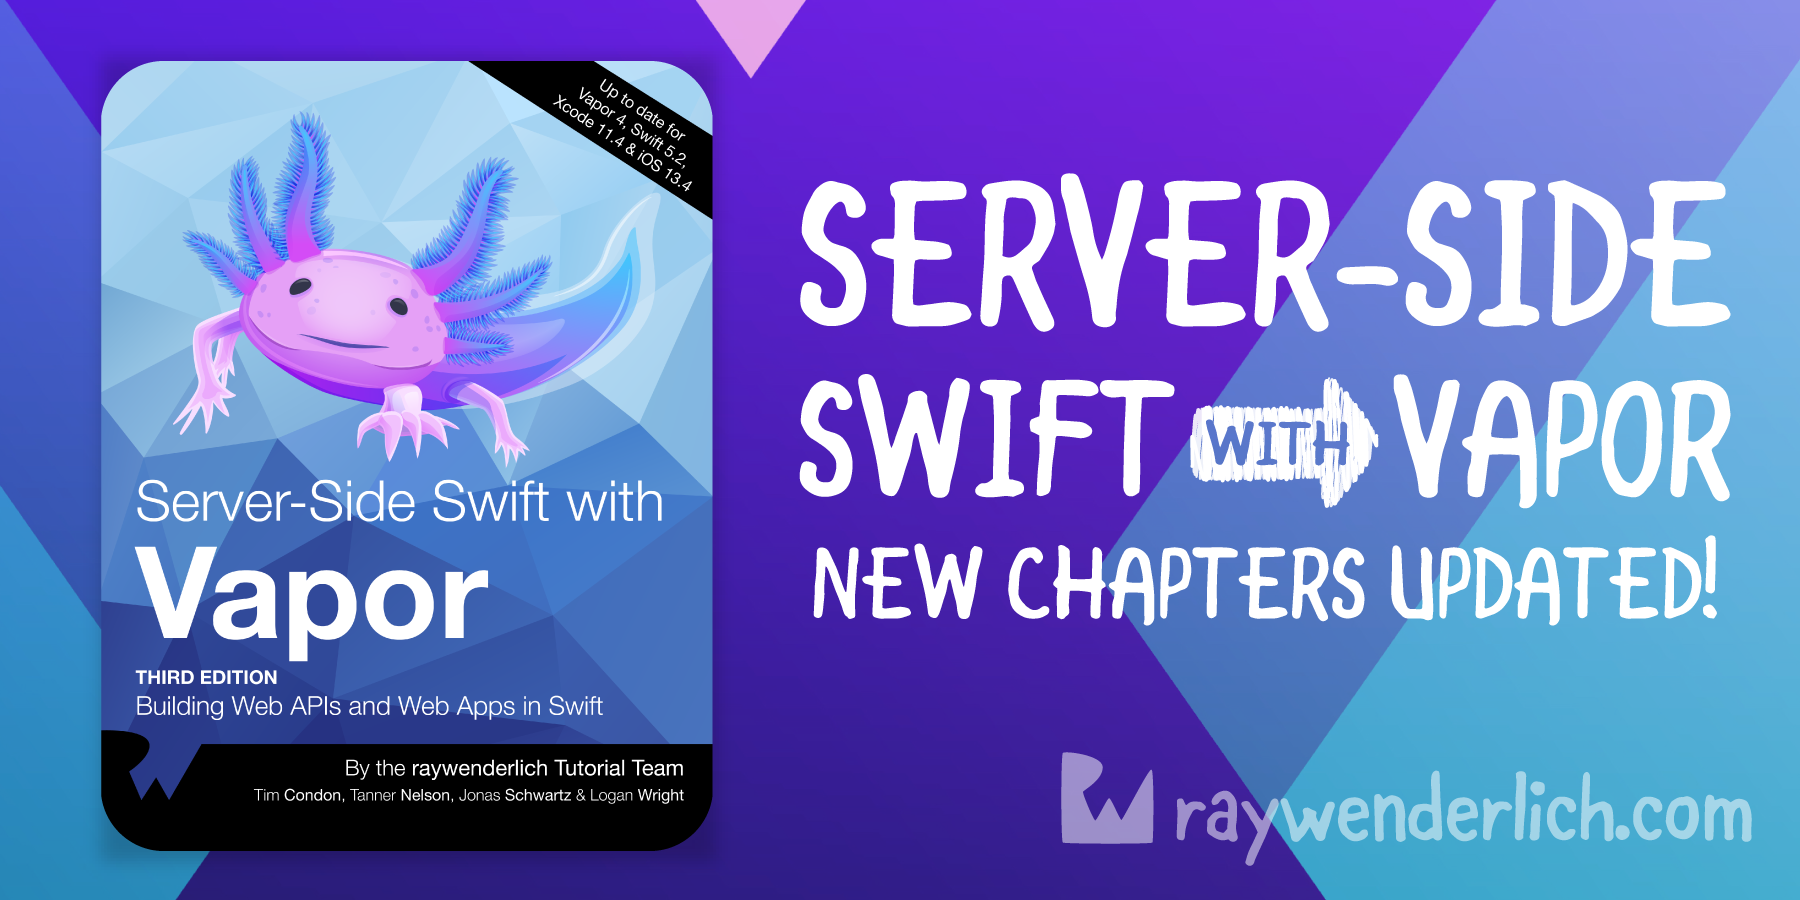 Server-Side Swift with Vapor: Chapter Updates Now Available! [FREE]